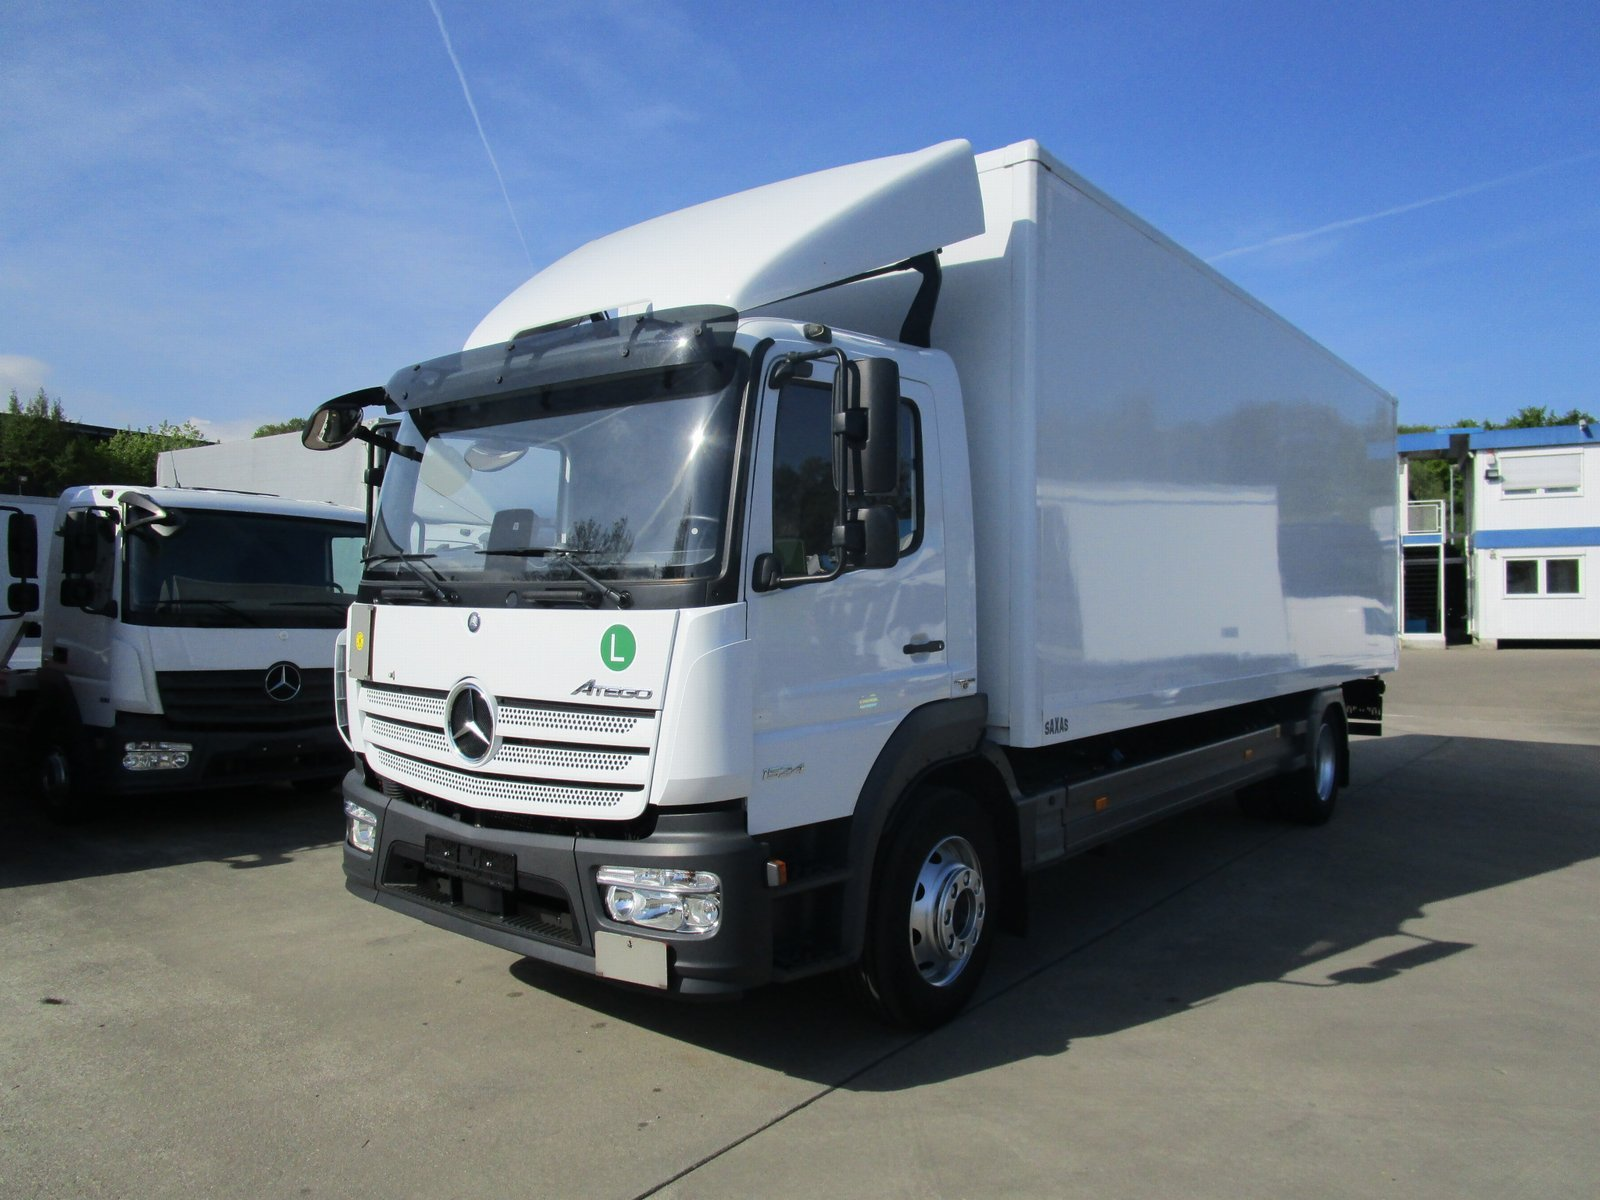 ATEGO IV 1524 L Koffer LBW 1,5 to.*E 6*NL 7,8 T